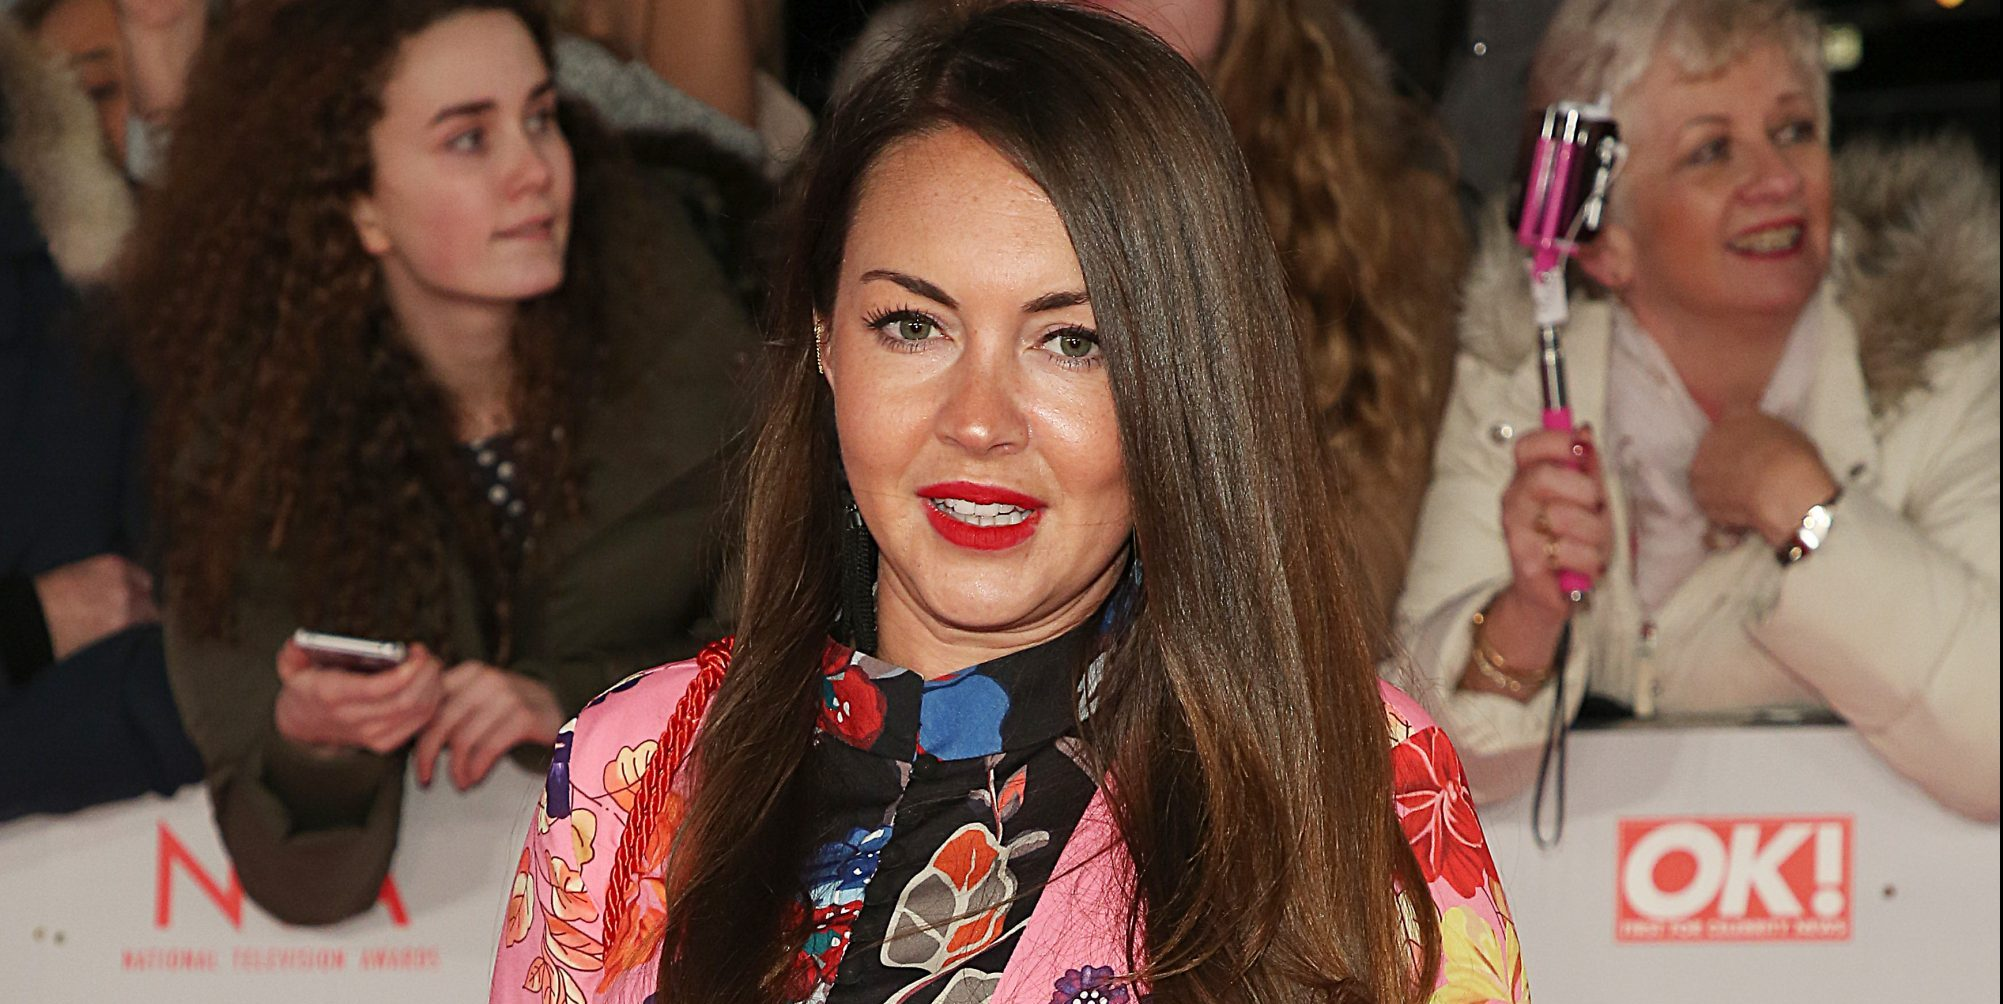 EastEnders' Lacey Turner shares bump photo seven months after birth of daughter